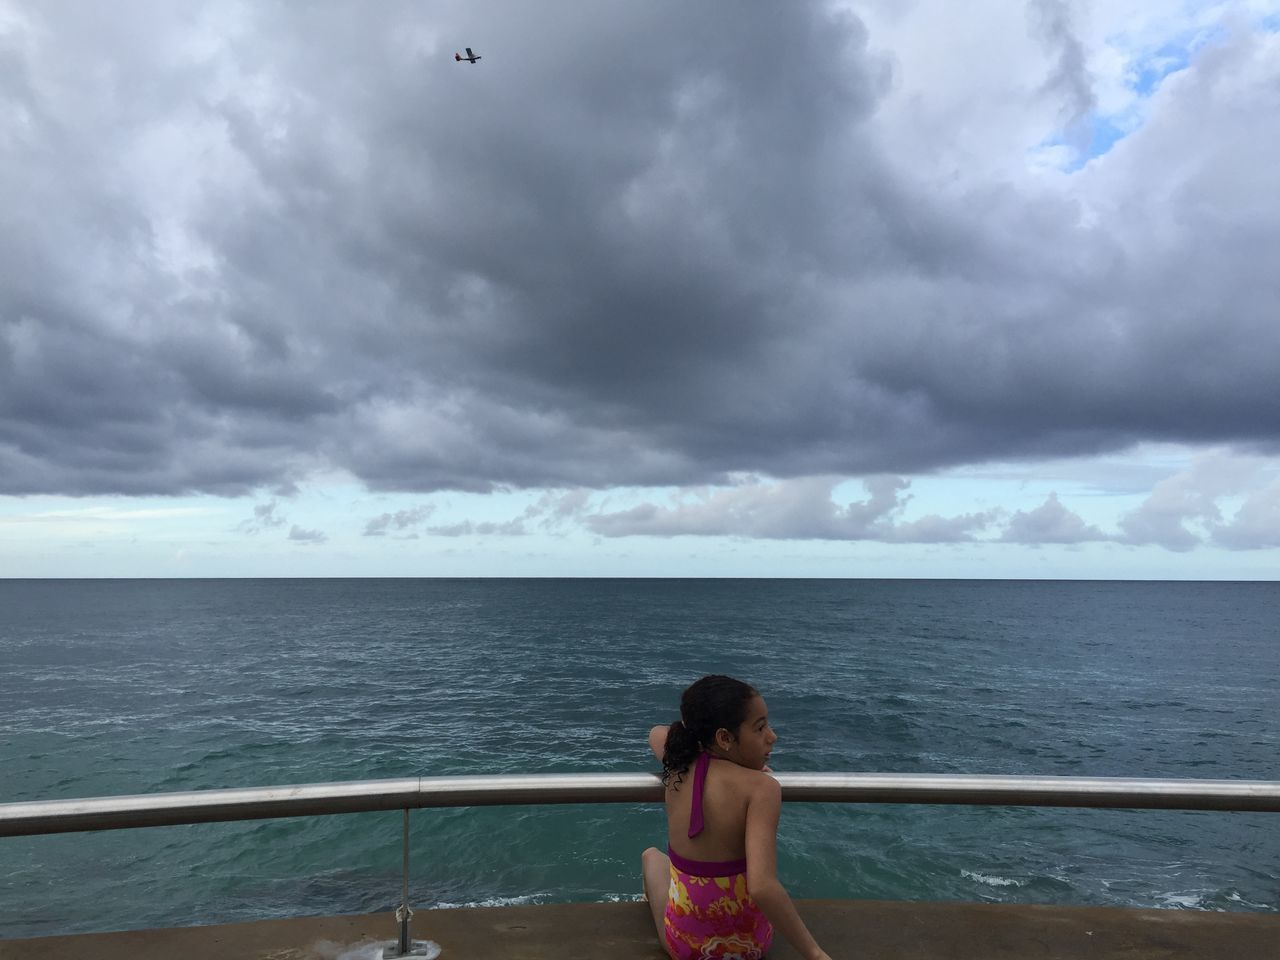 sea, sky, horizon over water, cloud - sky, water, railing, one person, nature, scenics, beauty in nature, outdoors, standing, real people, day, young adult, young women, people